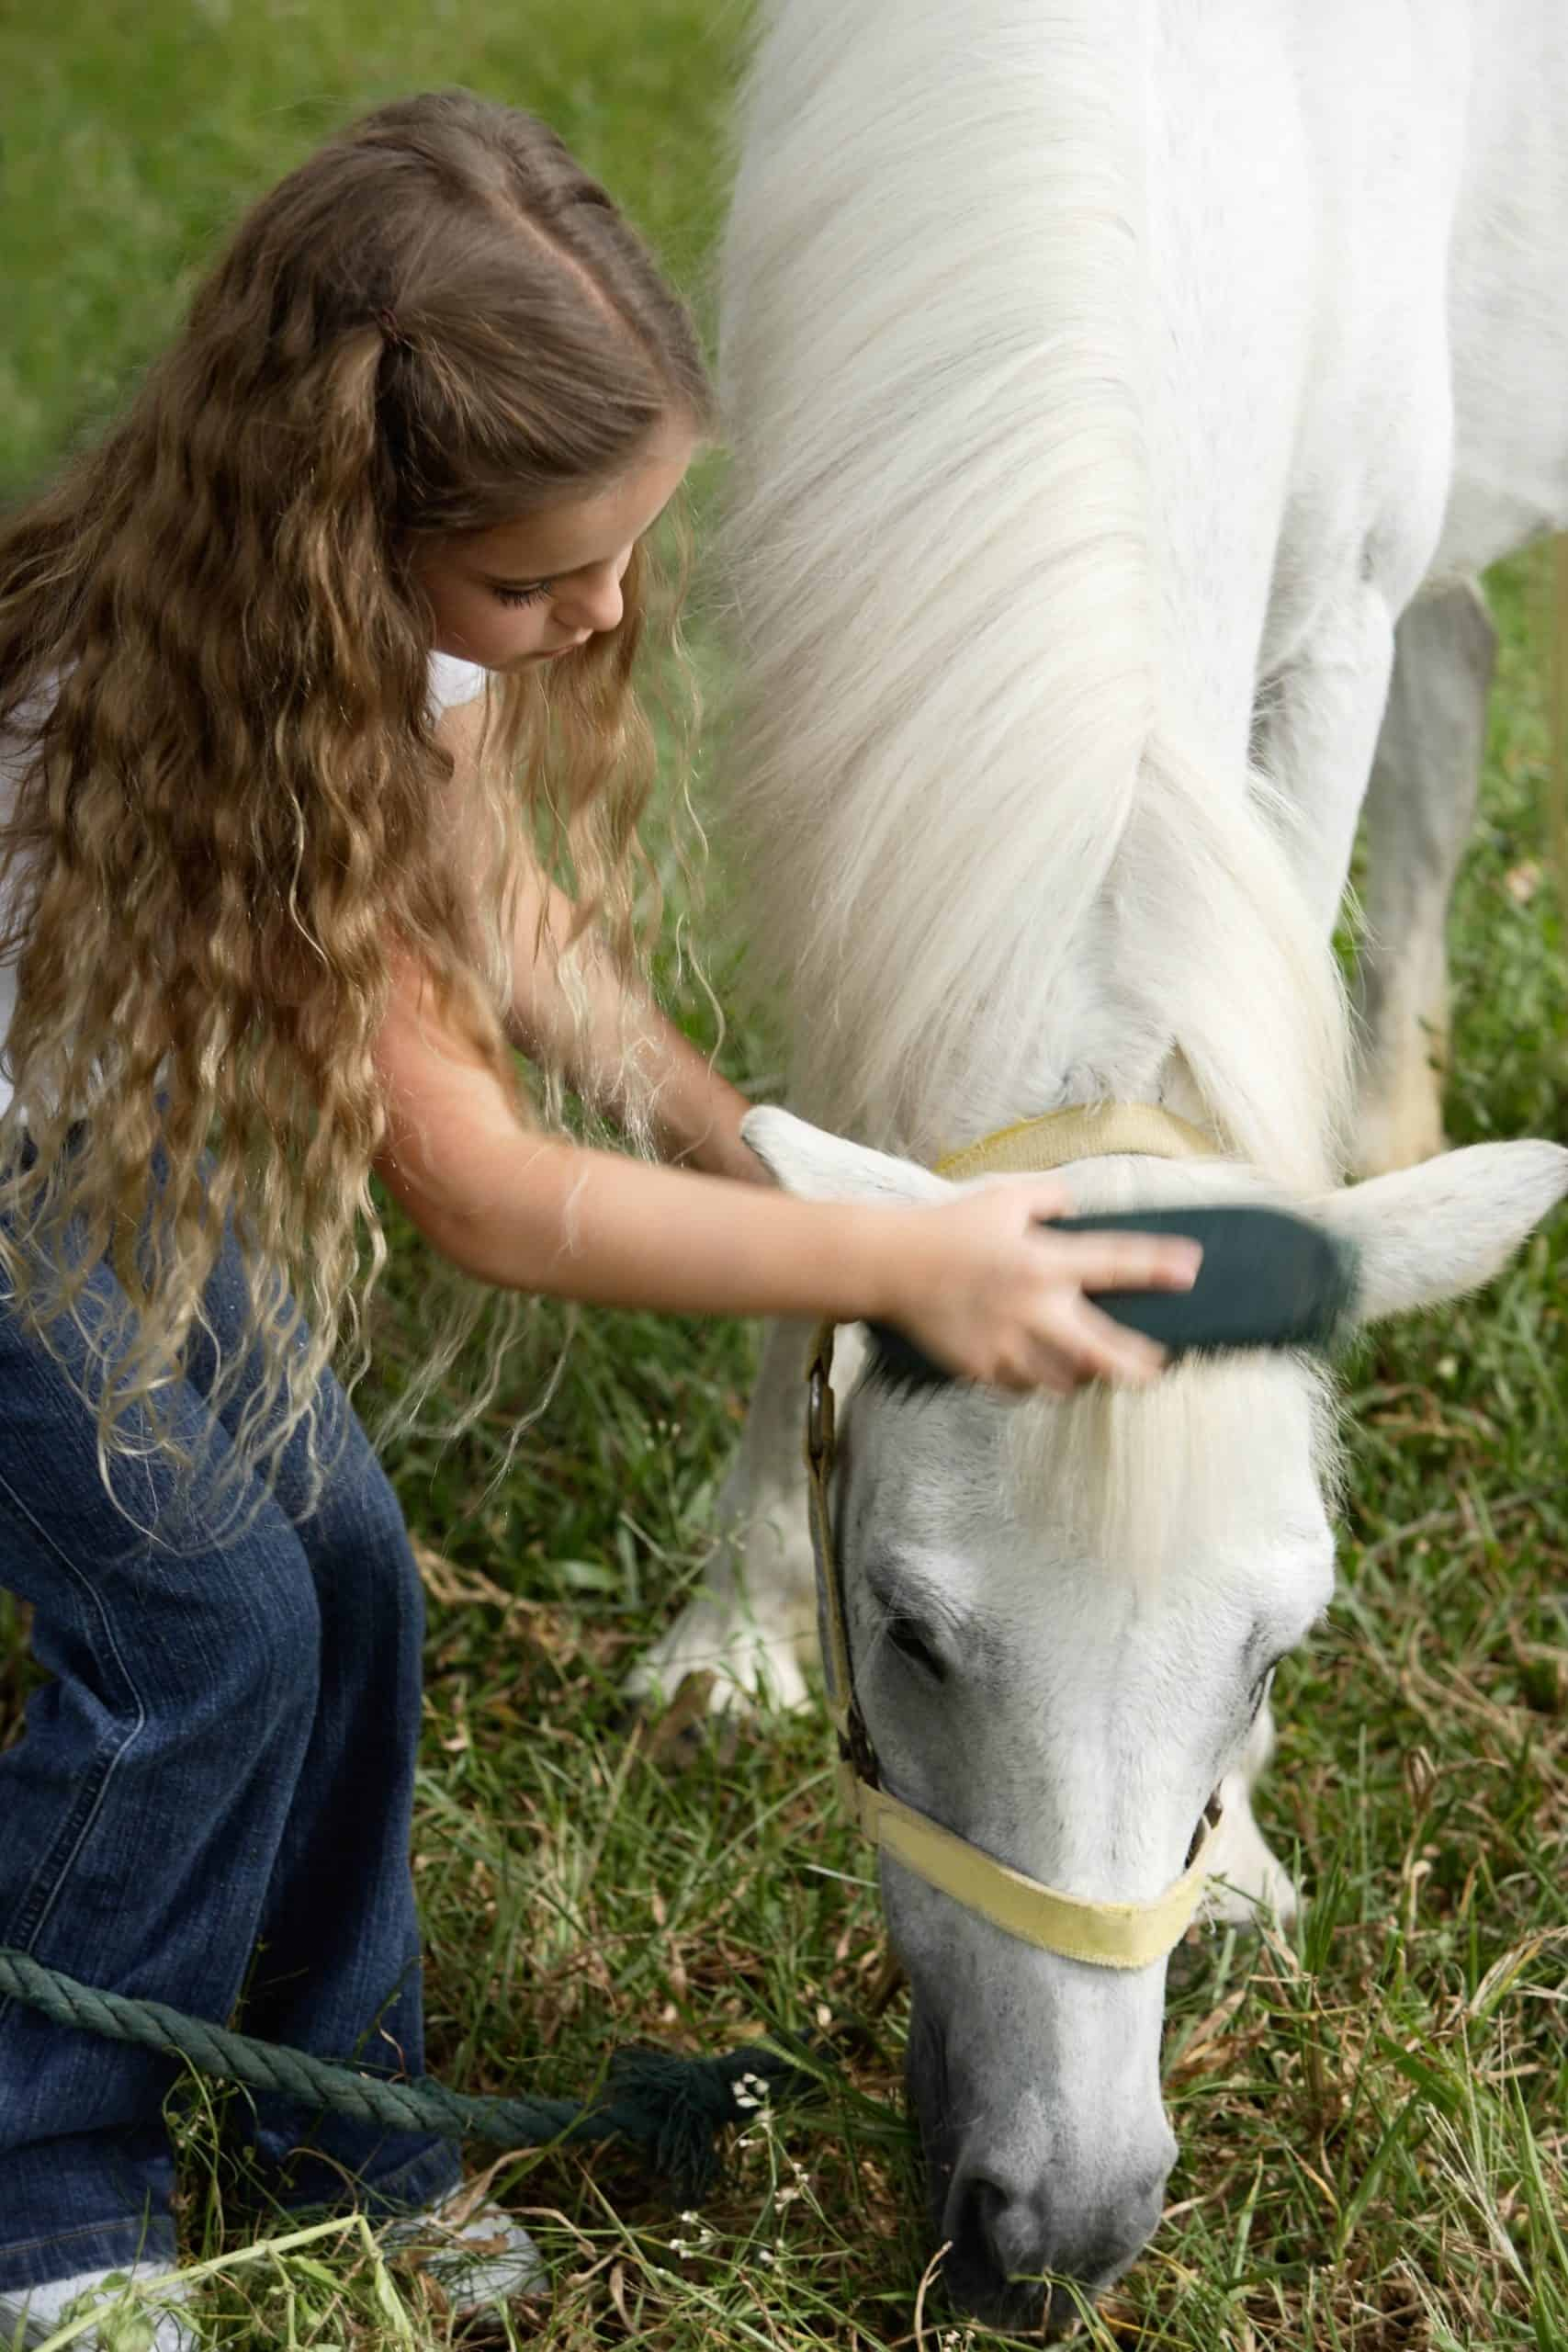 Canva - Young Girl brushing Horse